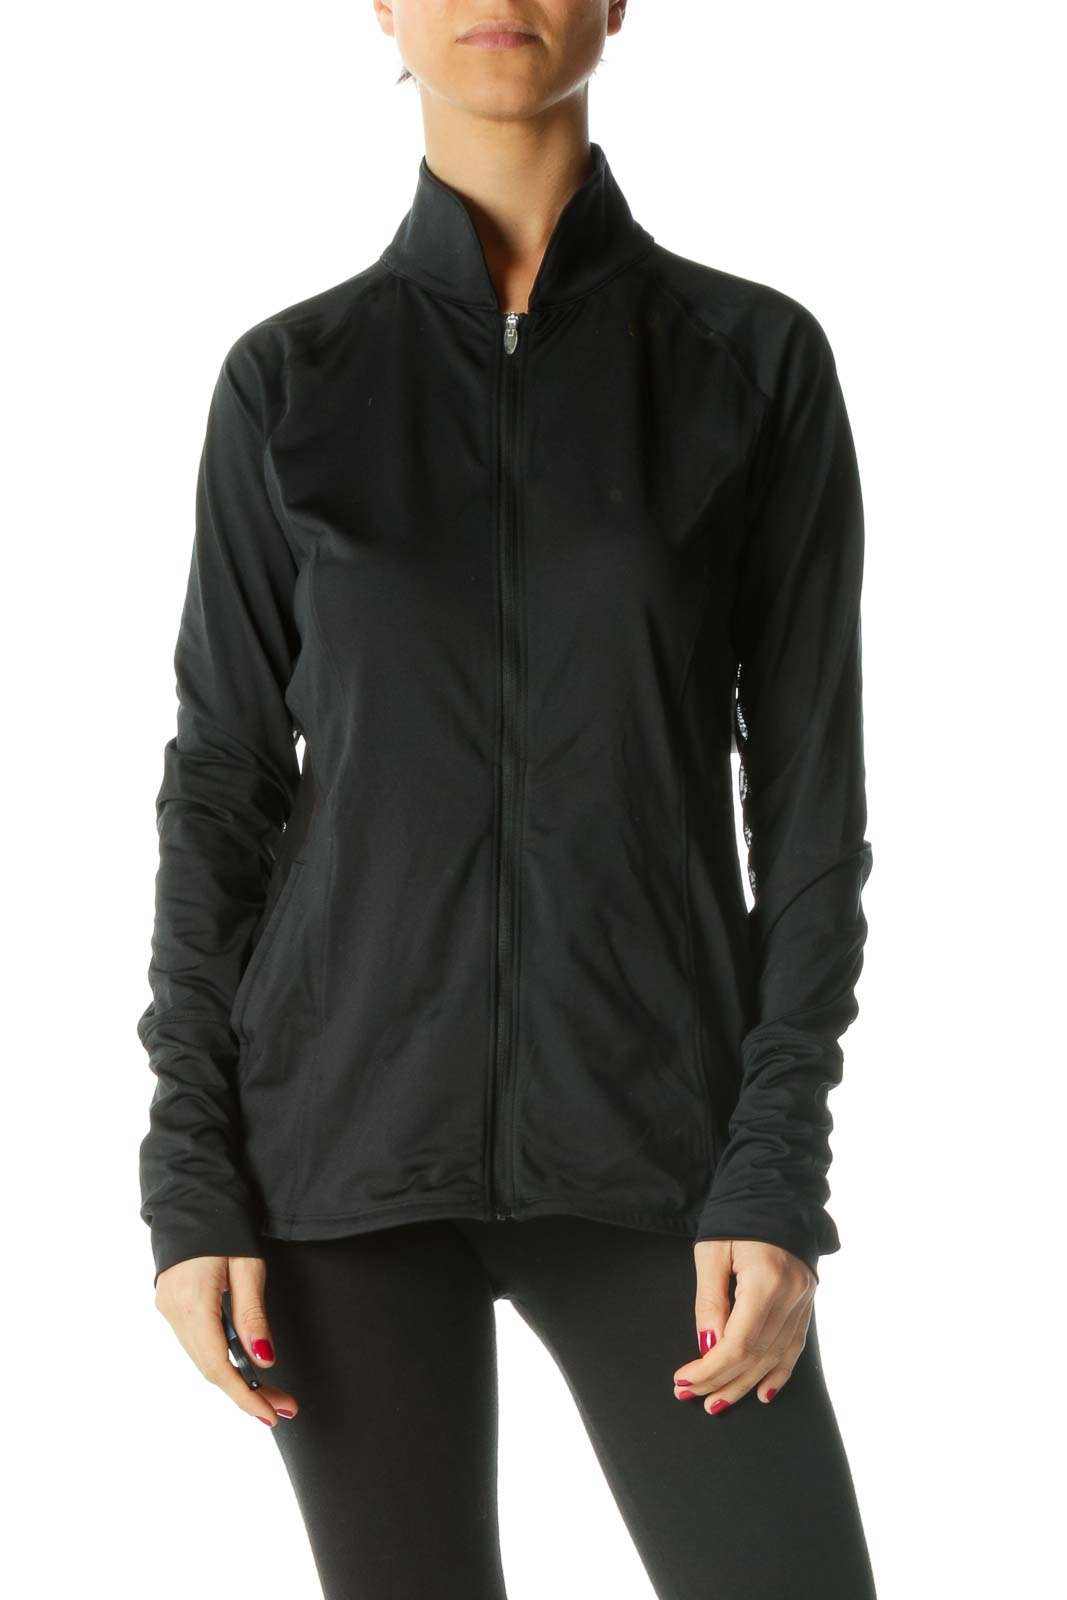 Black Zippered Sheer Detail Active Jacket Front